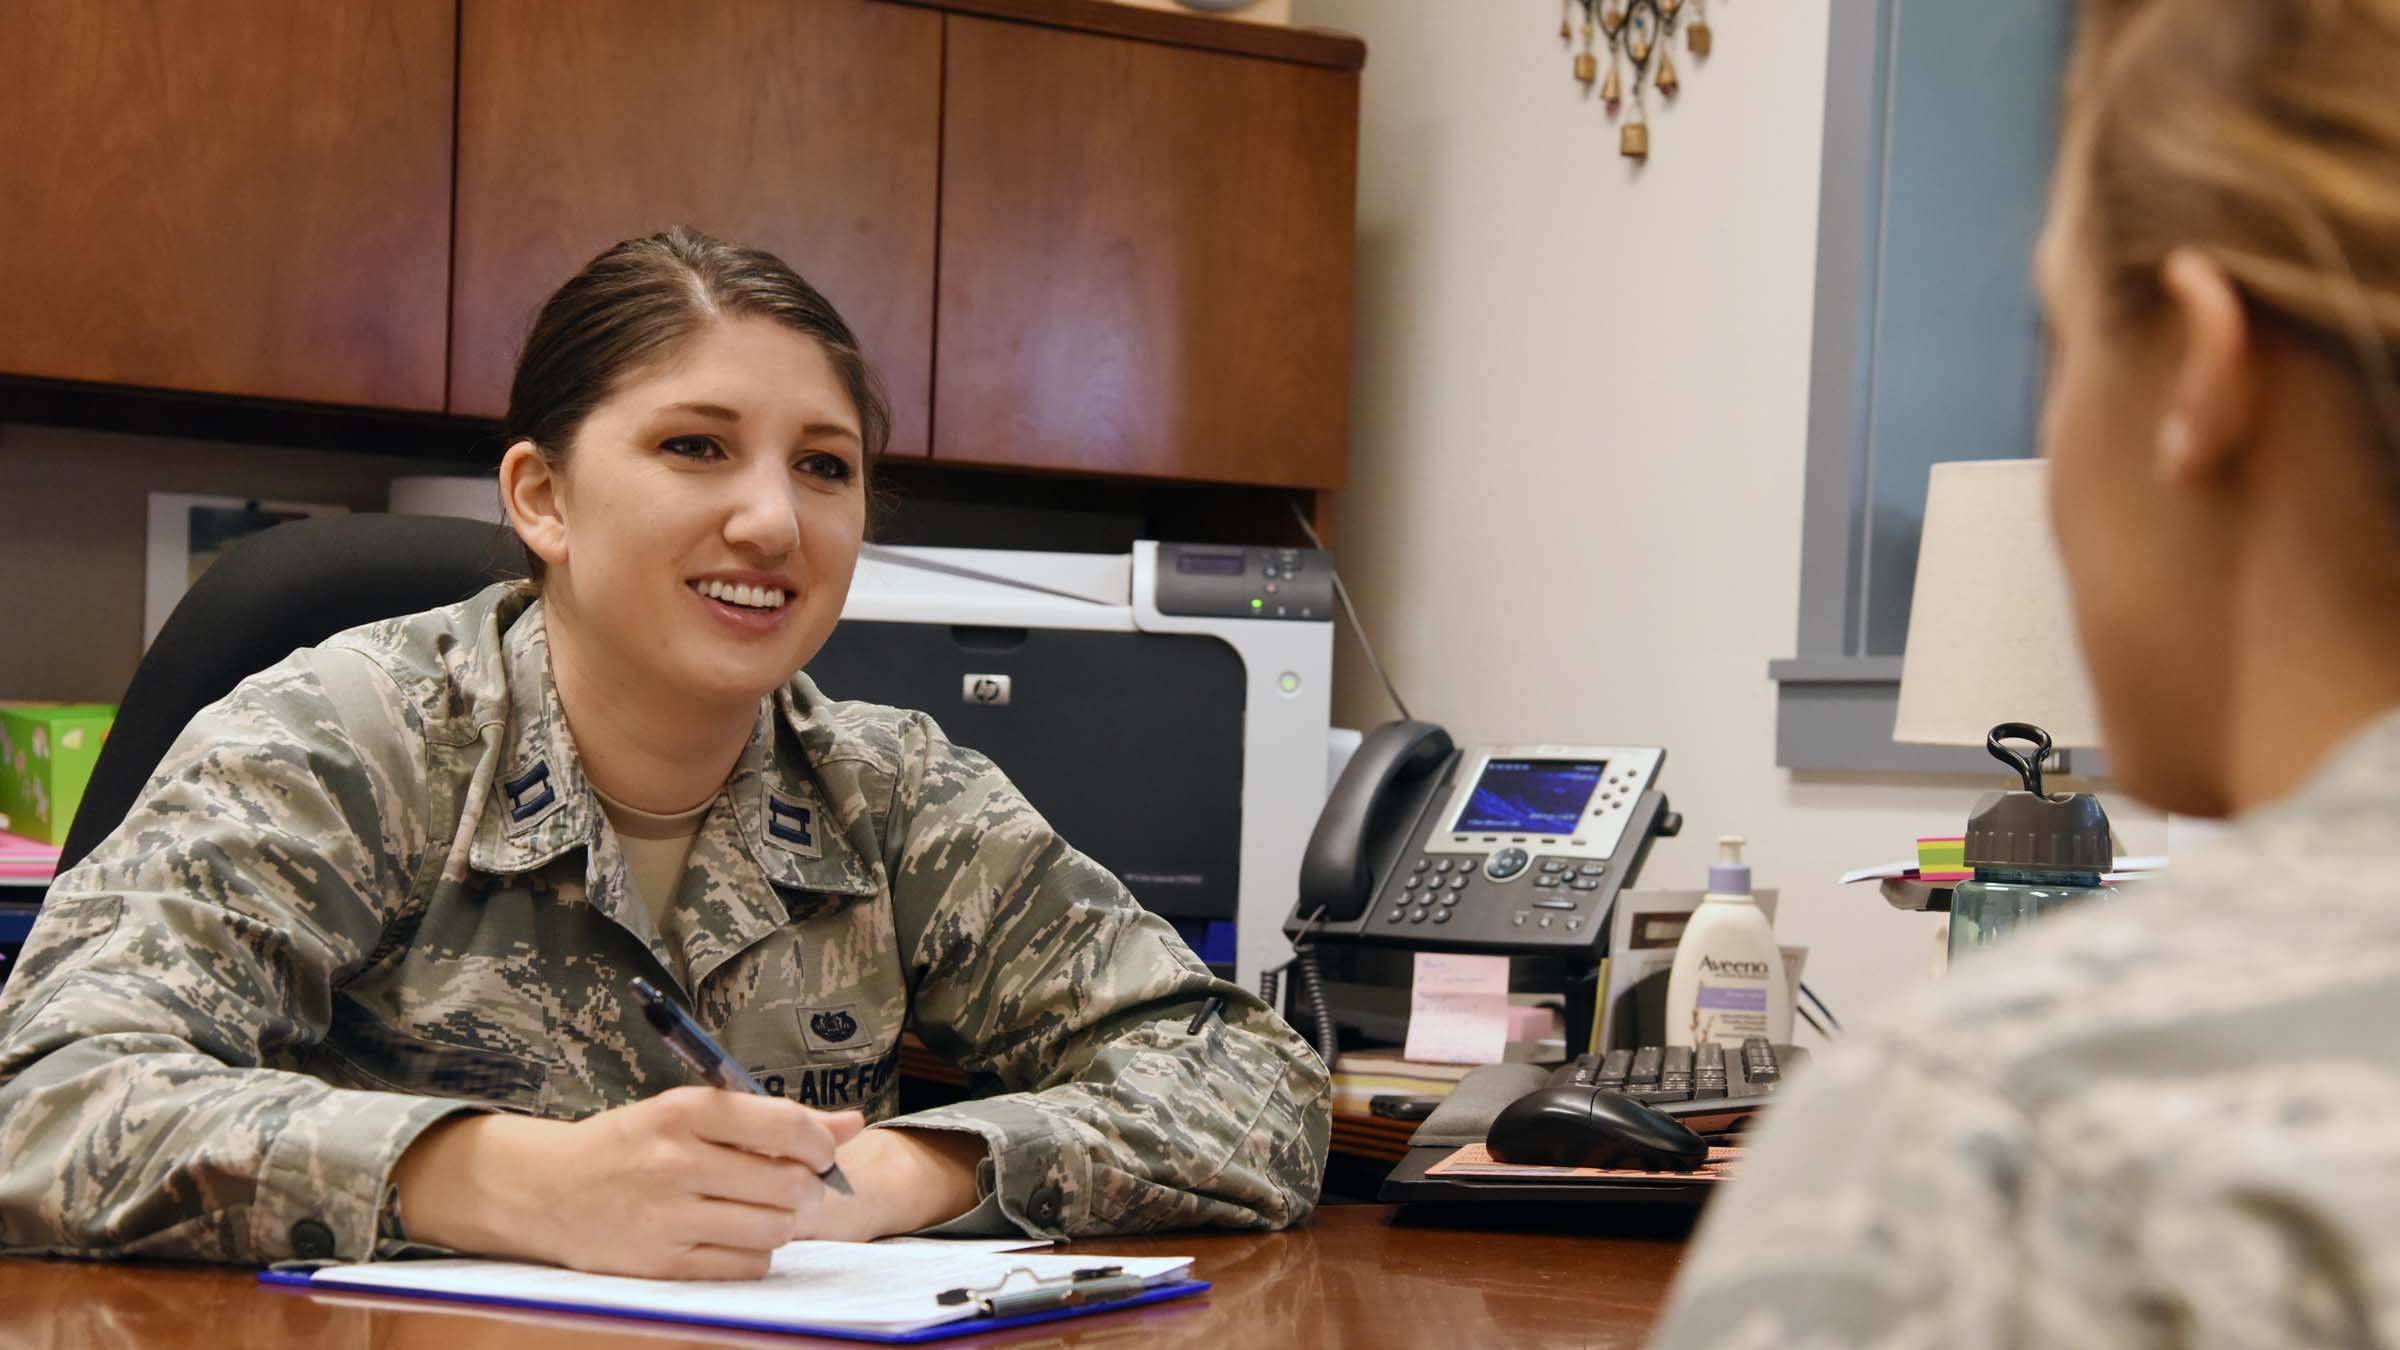 Female soldier giving counsel